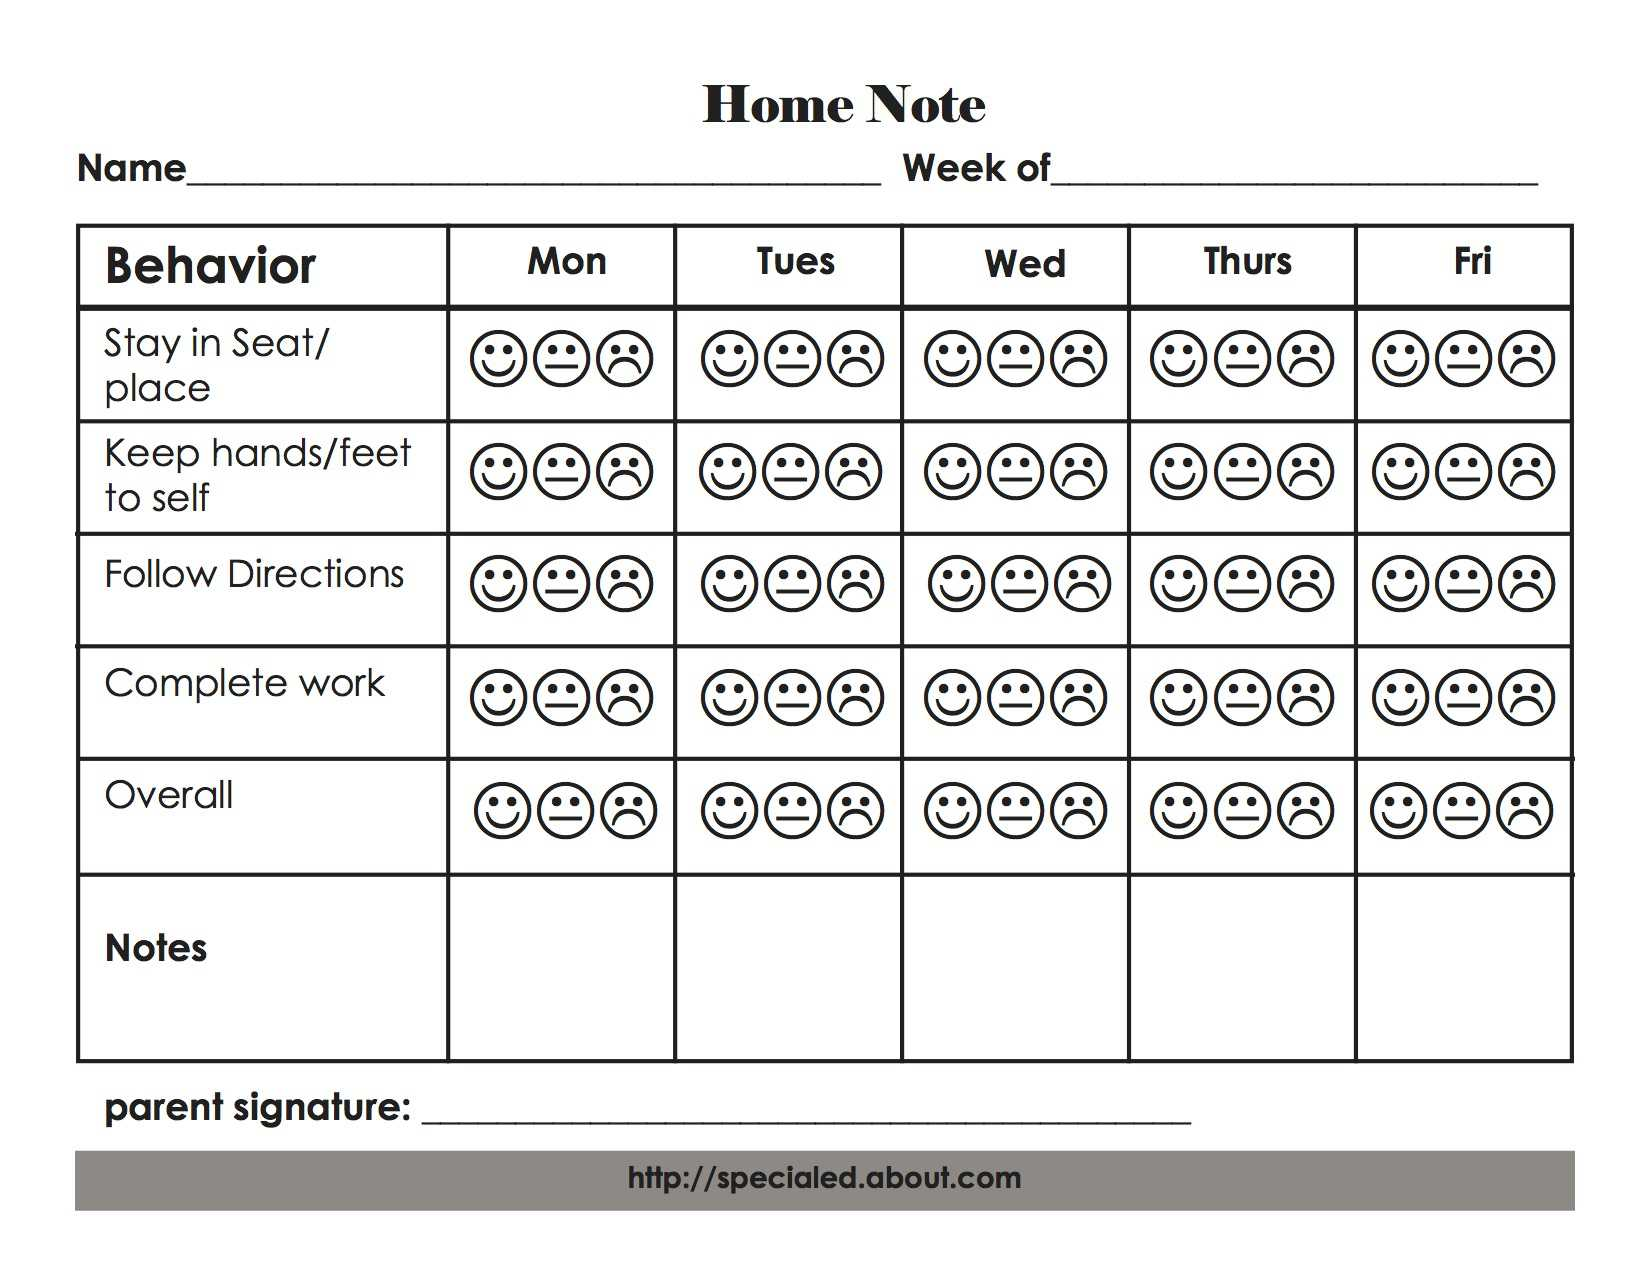 Weekly Elementary Home Note